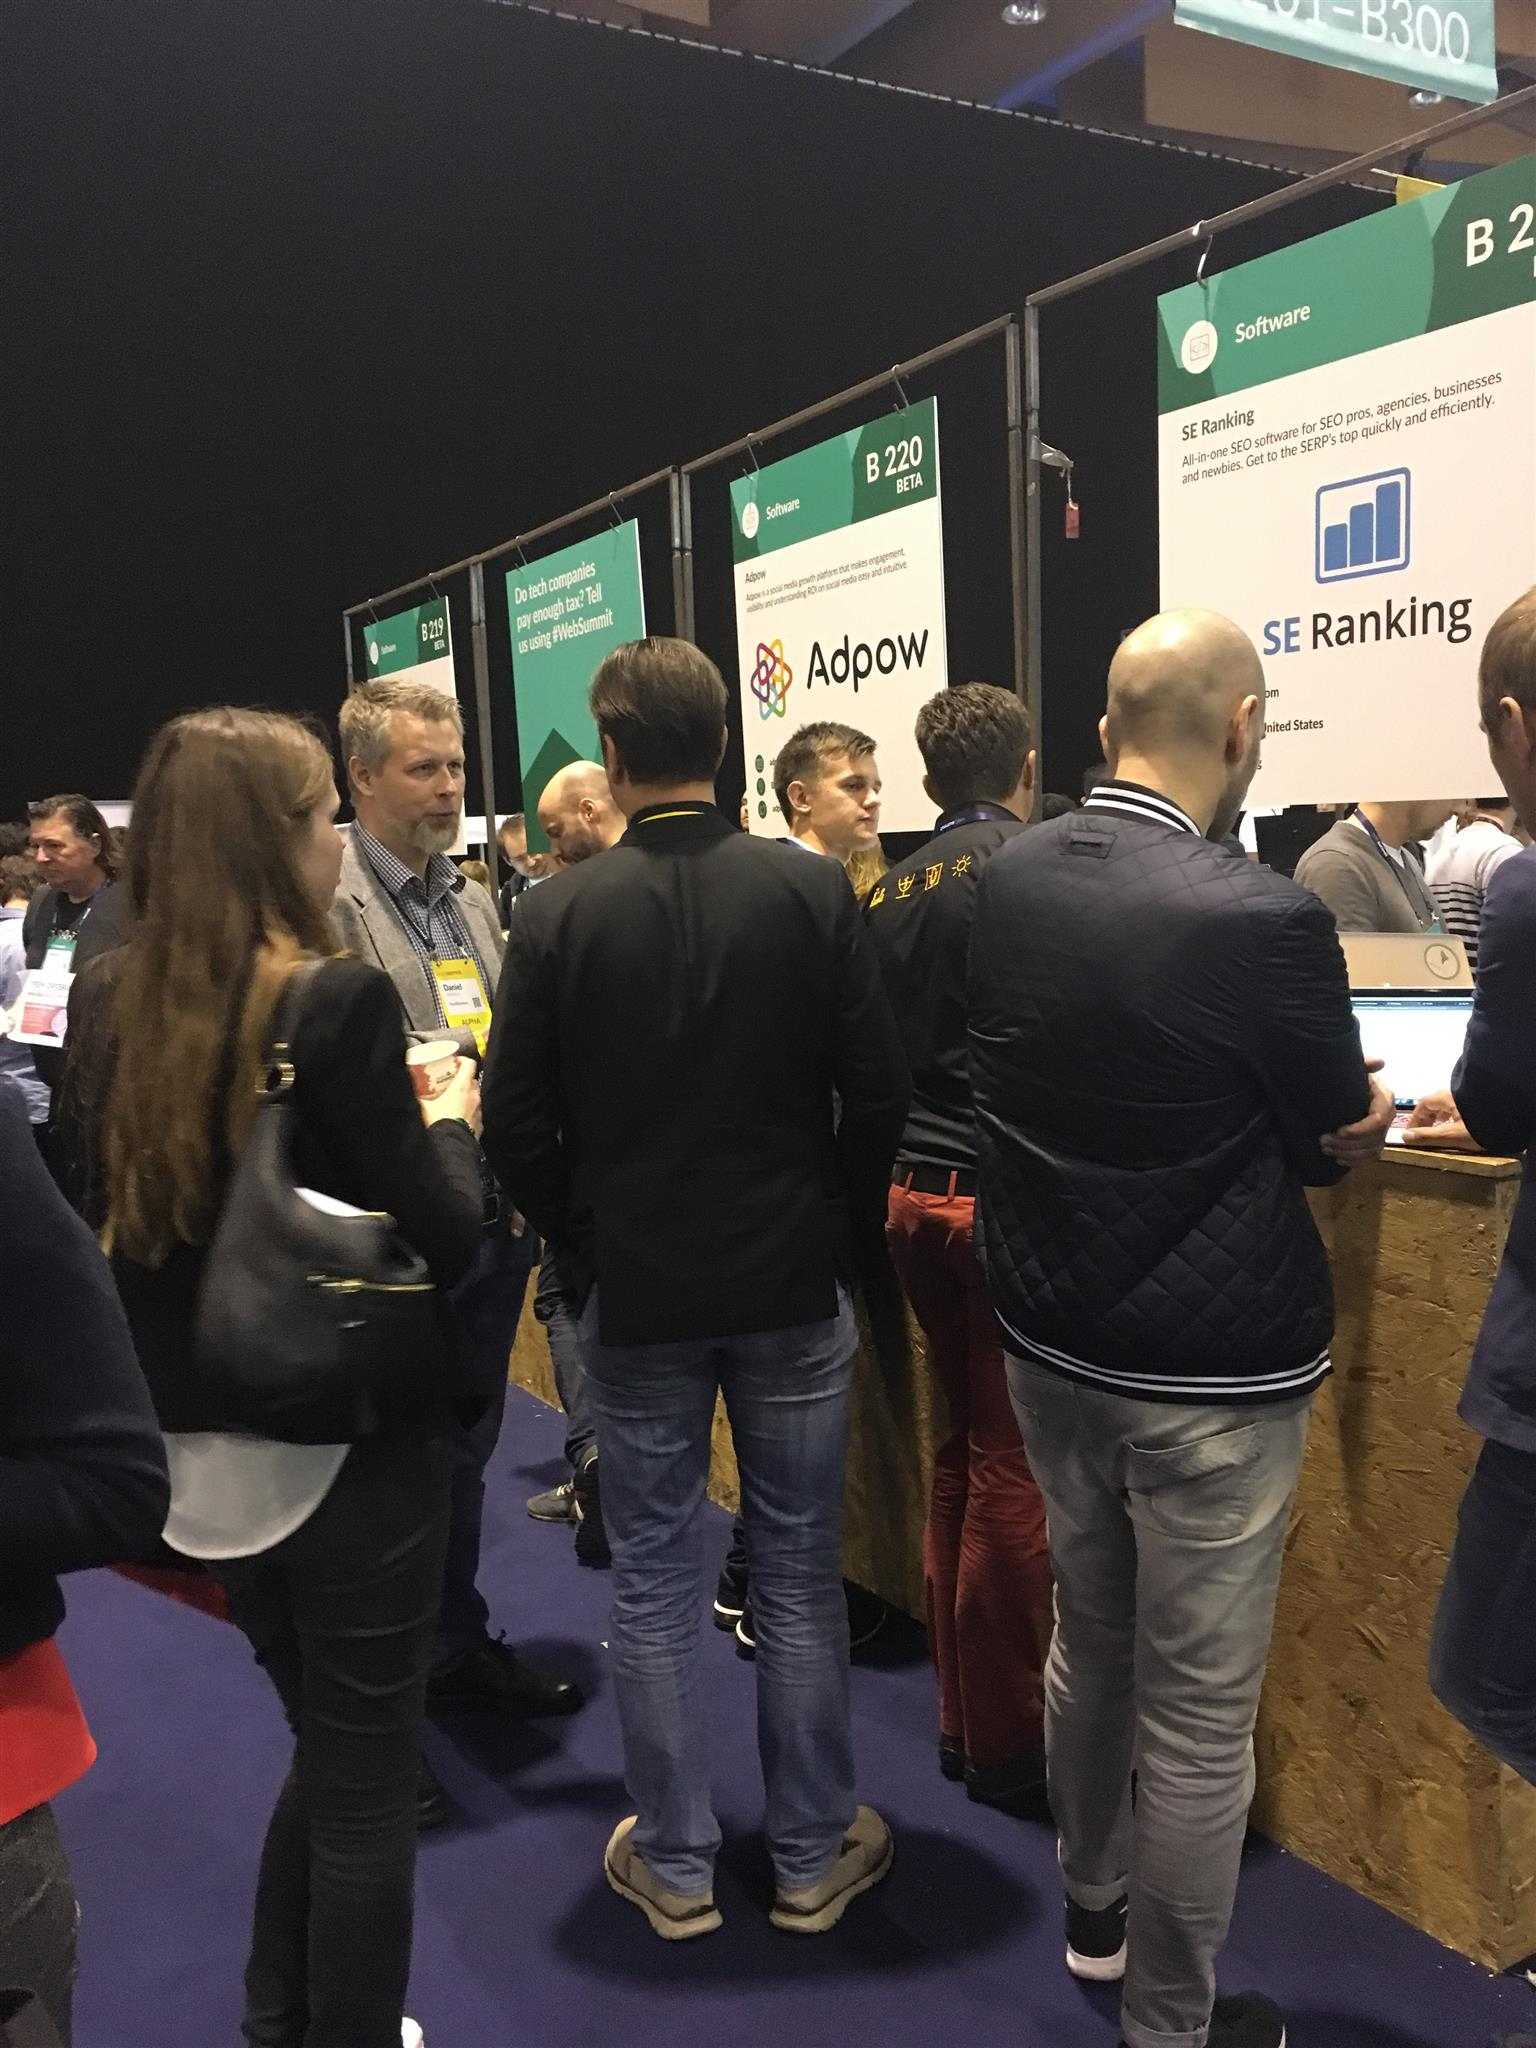 websummit crowd